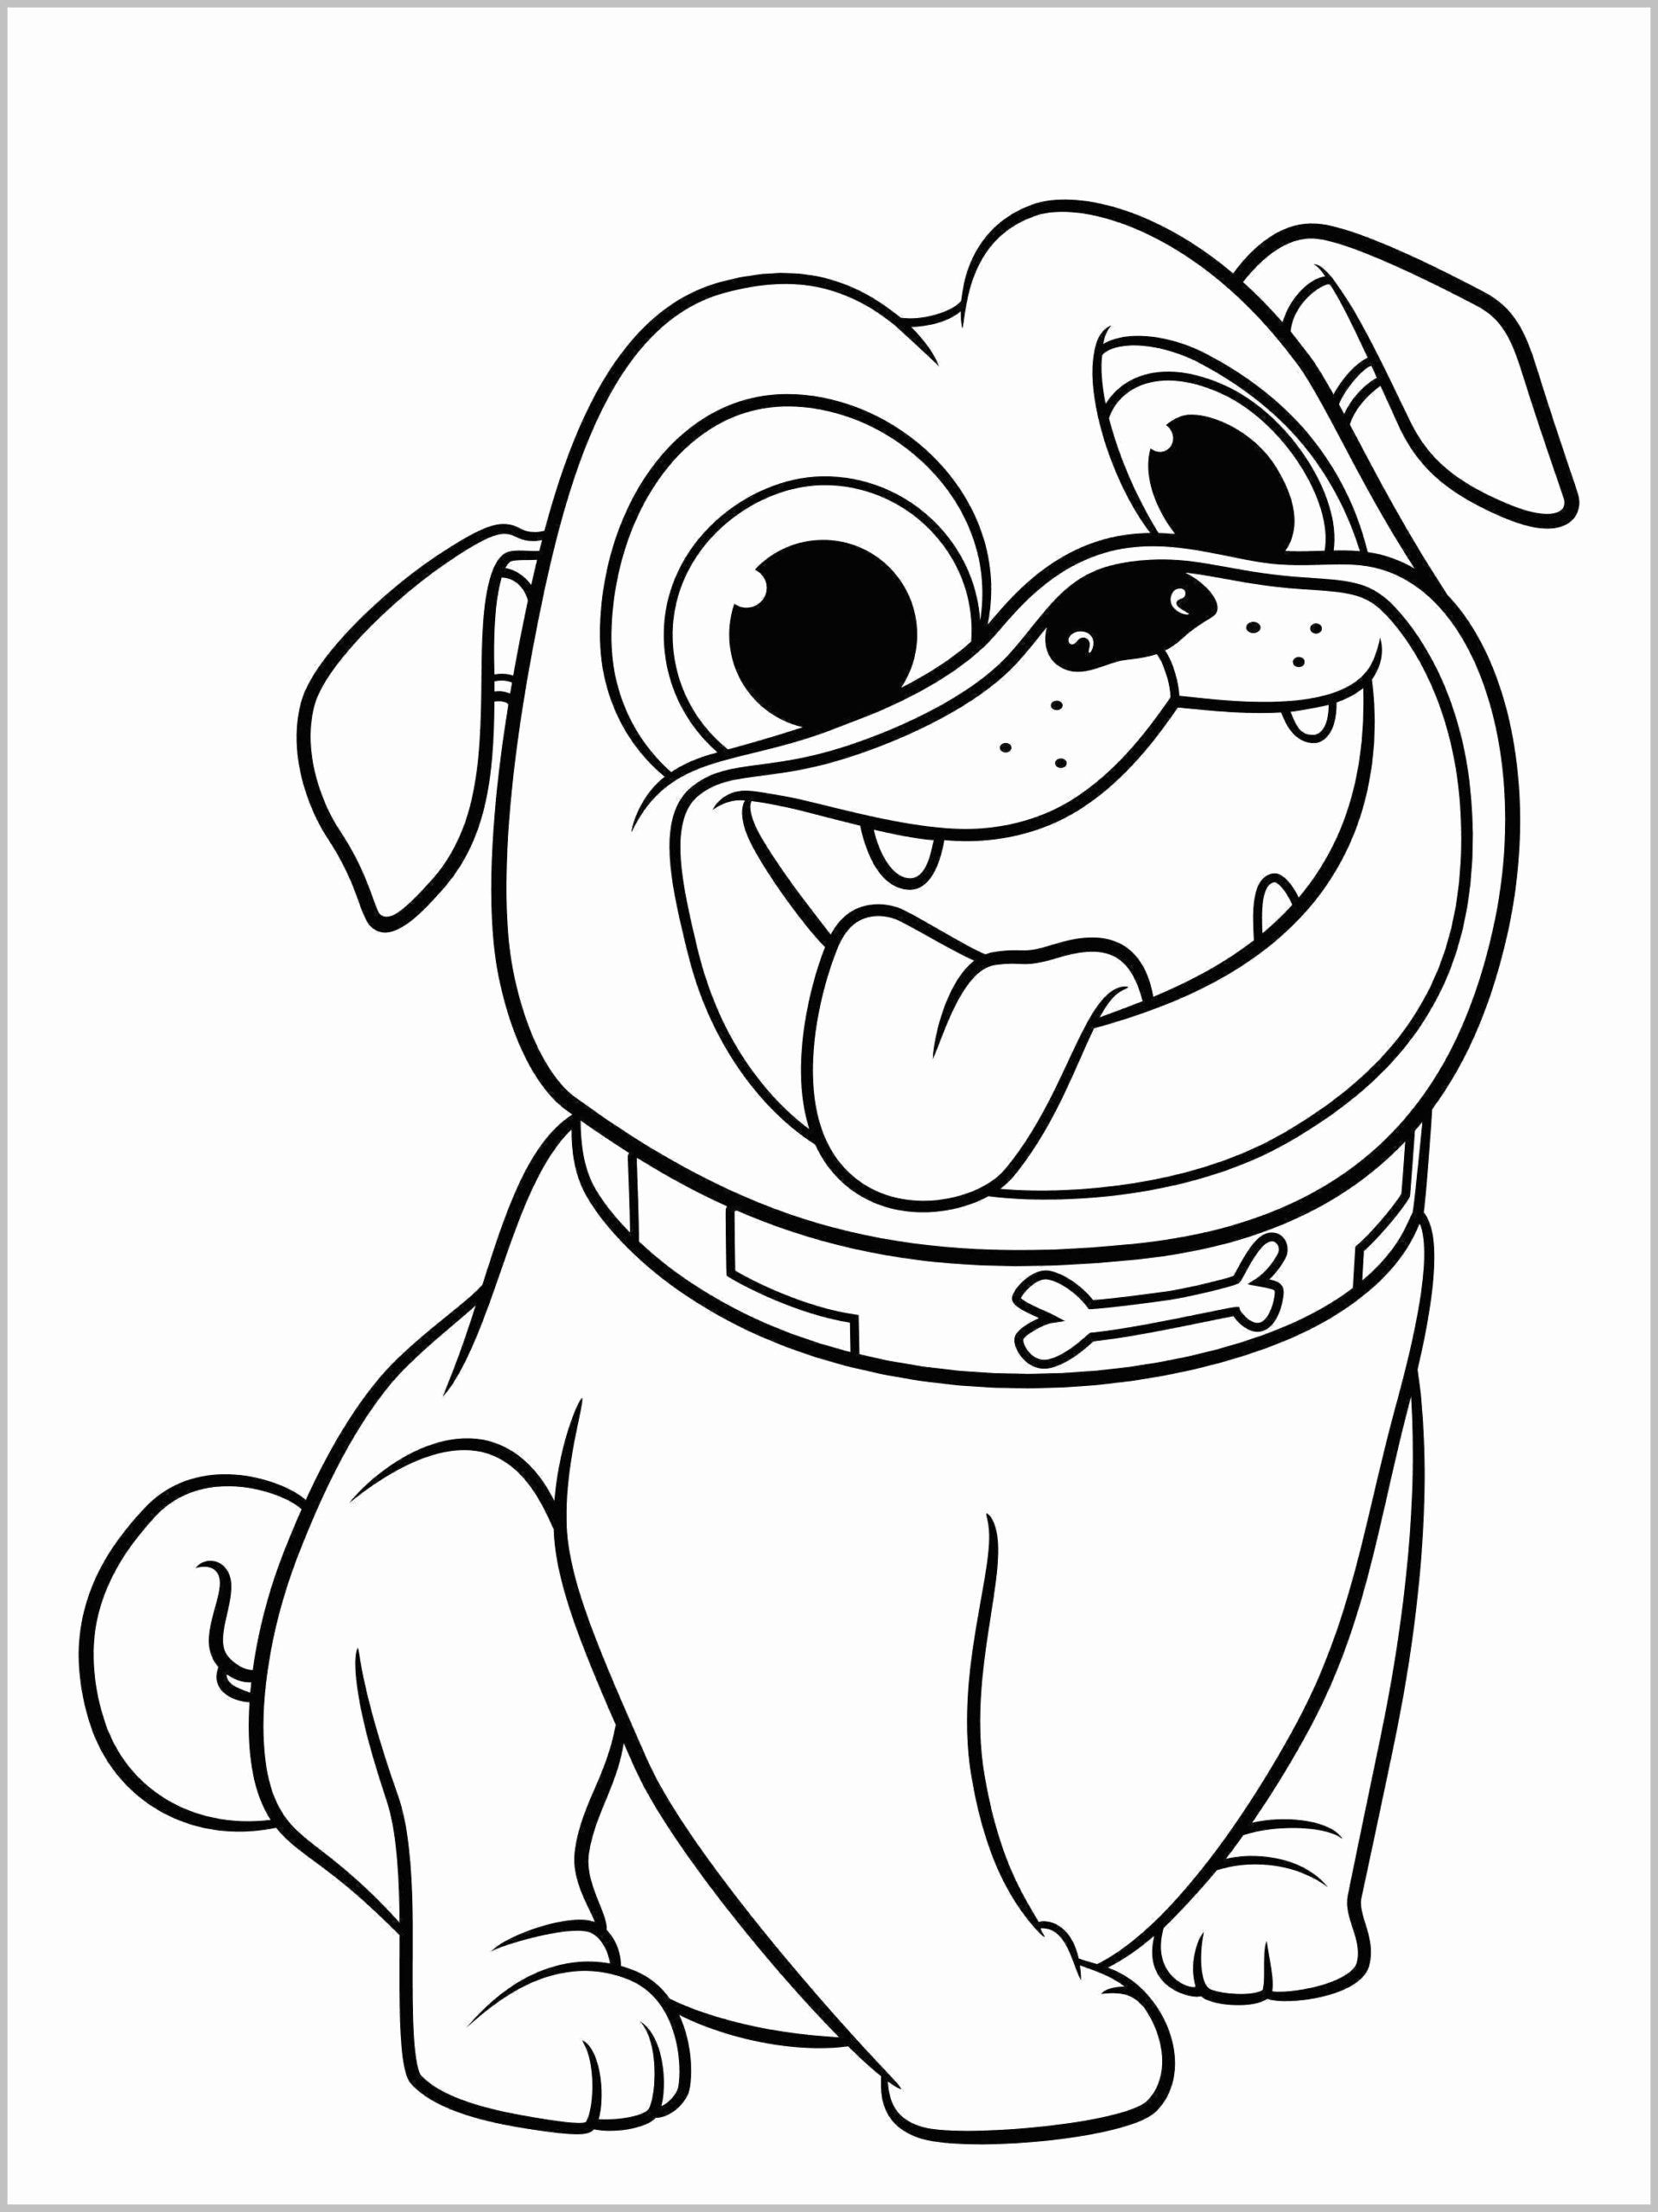 Coloring Pages For Adults Summer Lovely Coloring Pages Coloring Easy Printable For Summer Free Dog Coloring Page Puppy Coloring Pages Animal Coloring Pages [ 2560 x 1919 Pixel ]